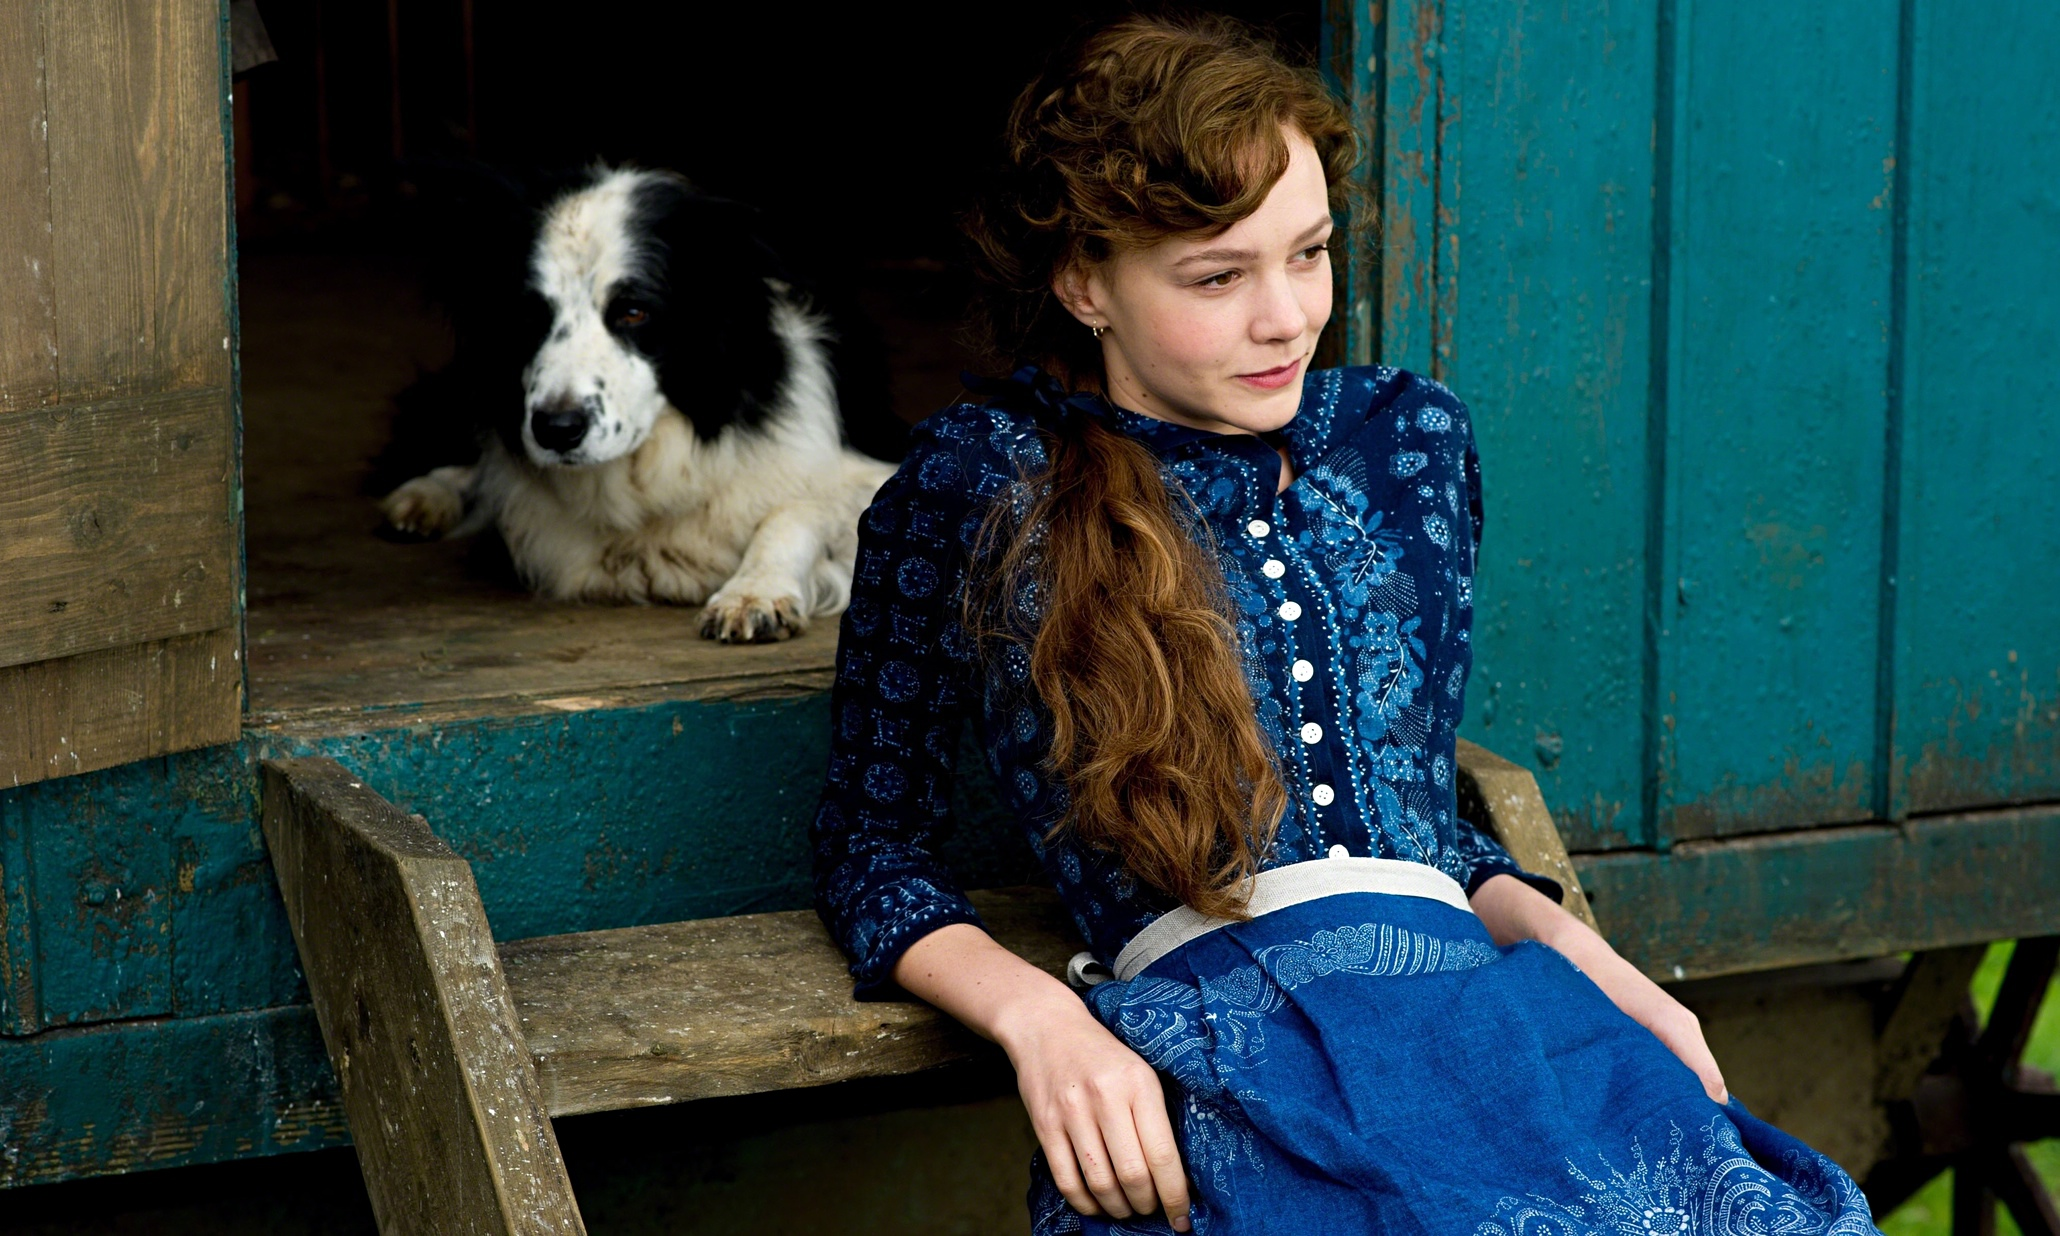 Carey Mulligan in a scene from Far From the Madding Crowd, one of the featured films during the 8th Panorama of Film Festival